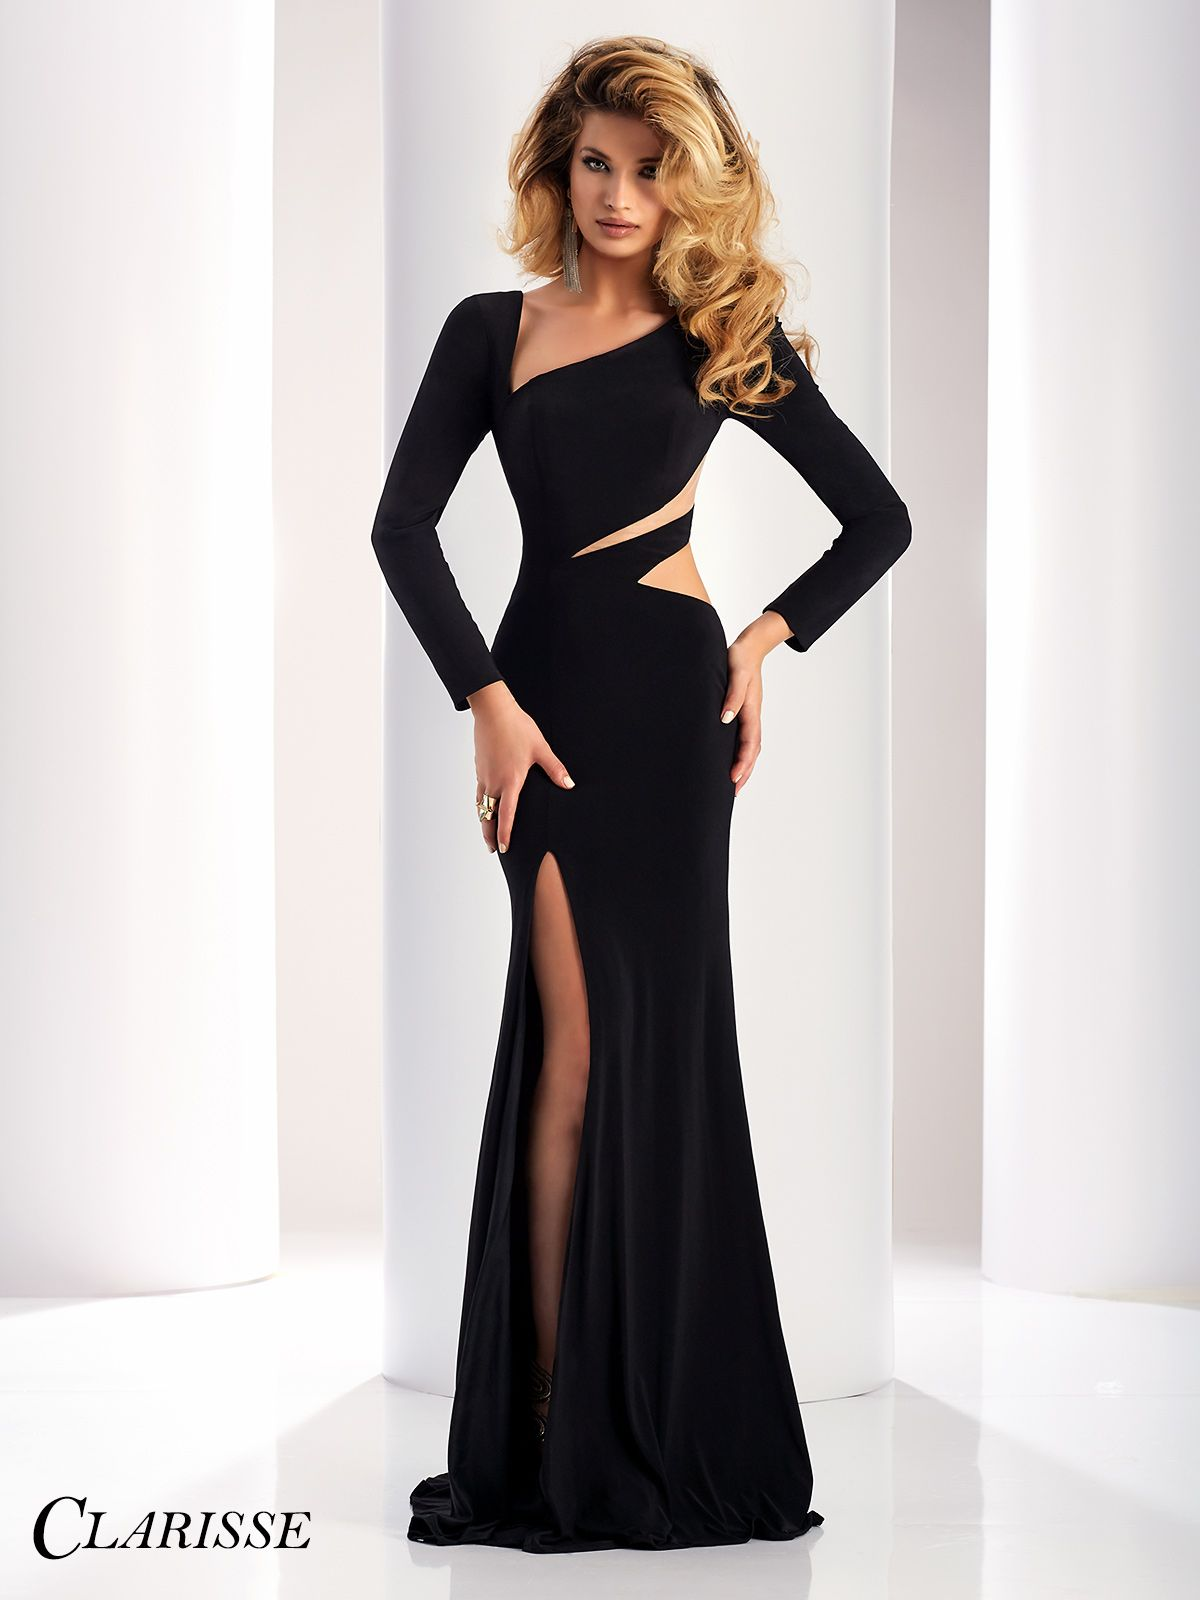 Clarisse Long Sleeve Cutout Detail Dress 4859 | Dresses | Pinterest ...